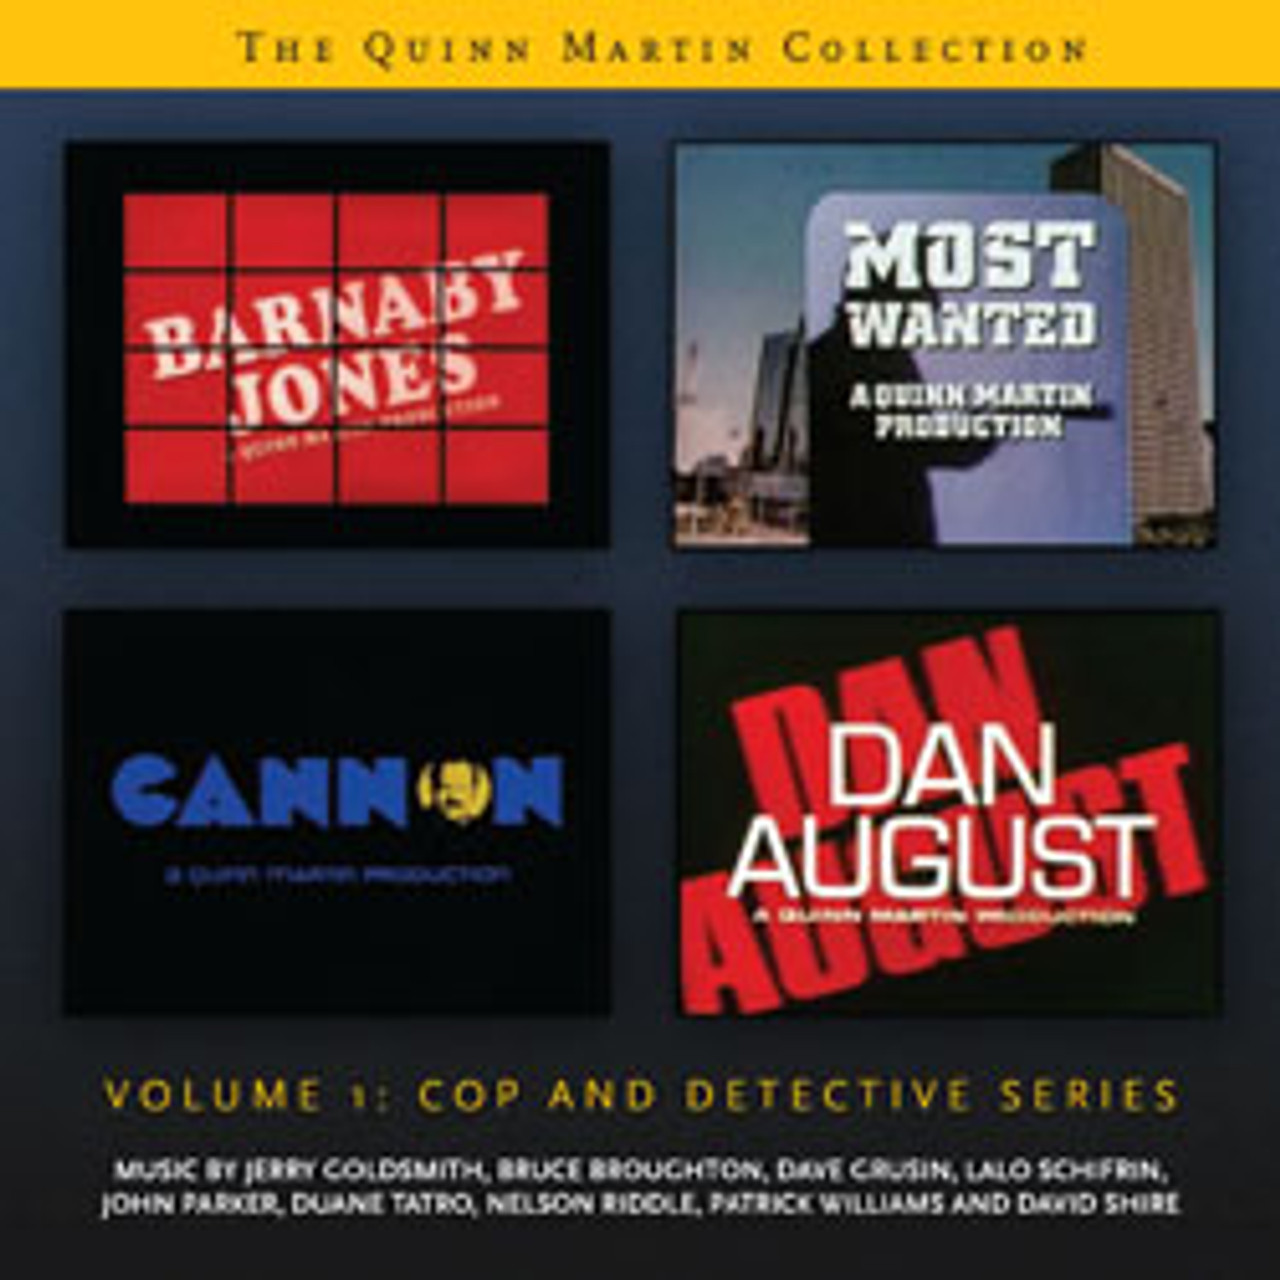 THE QUINN MARTIN COLLECTION – VOLUME 1: COP AND DETECTIVE SERIES – LIMITED  EDITION (2-CD SET)